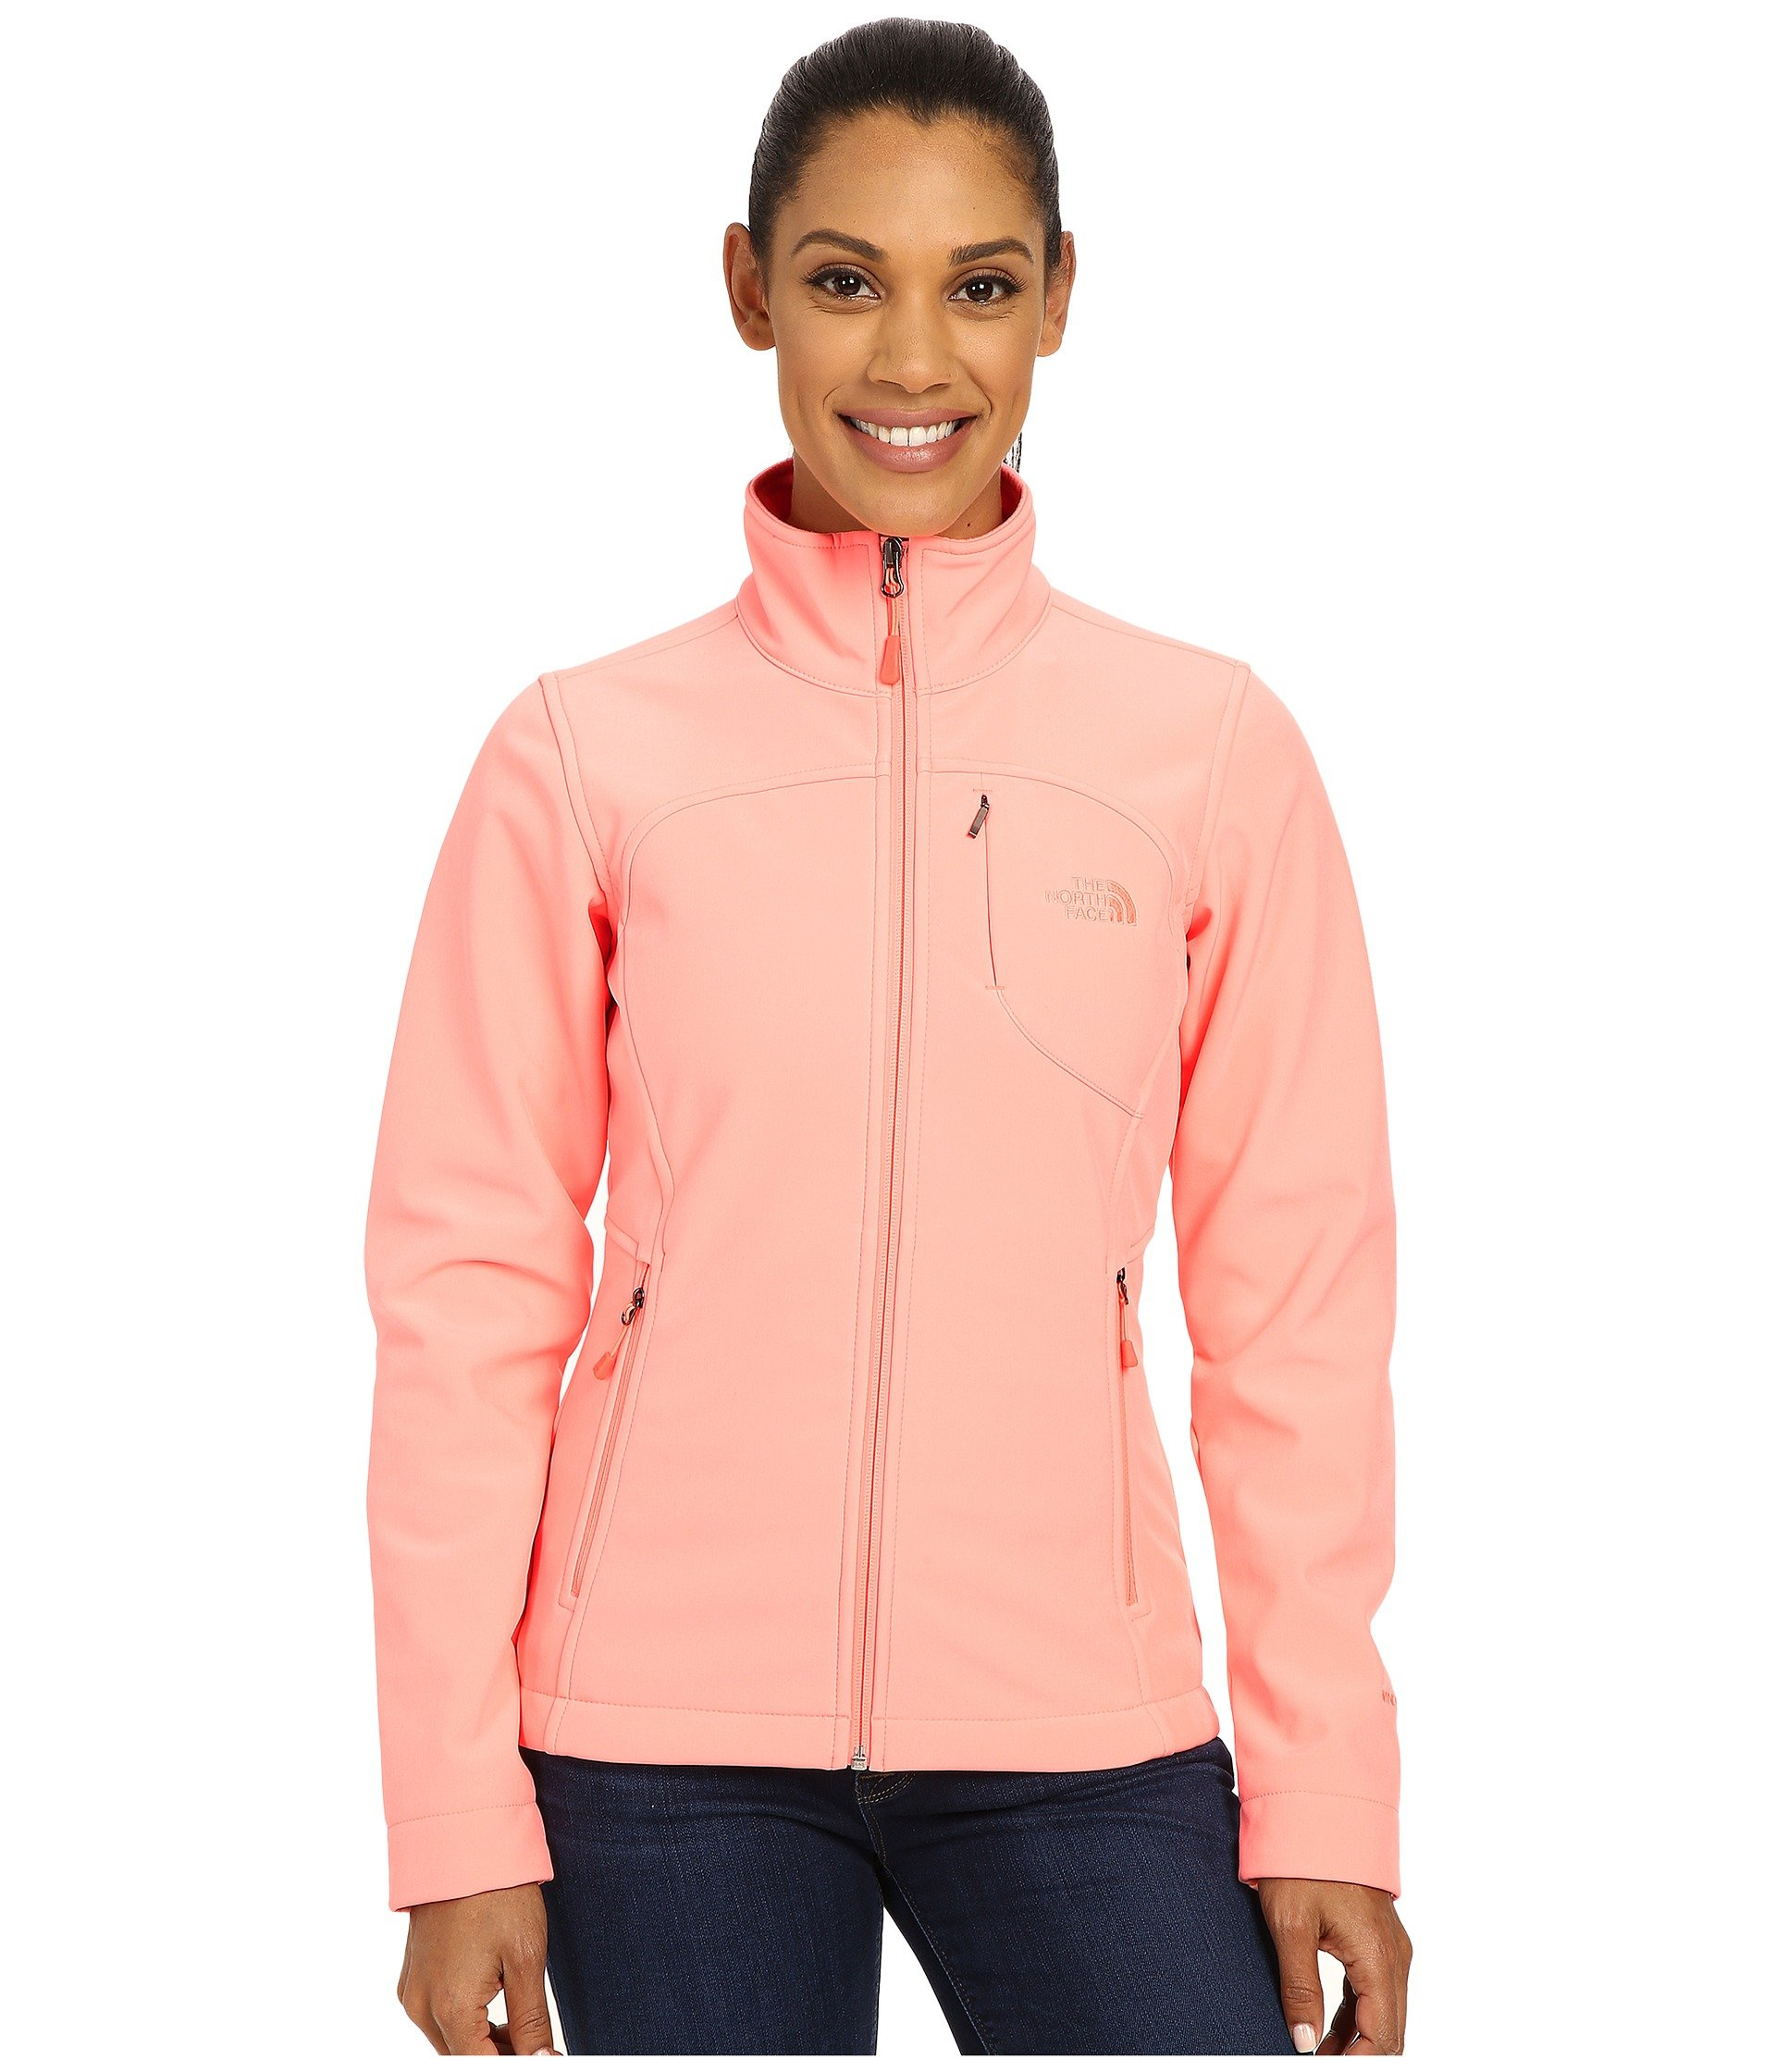 The north face women's apex bionic hooded jacket